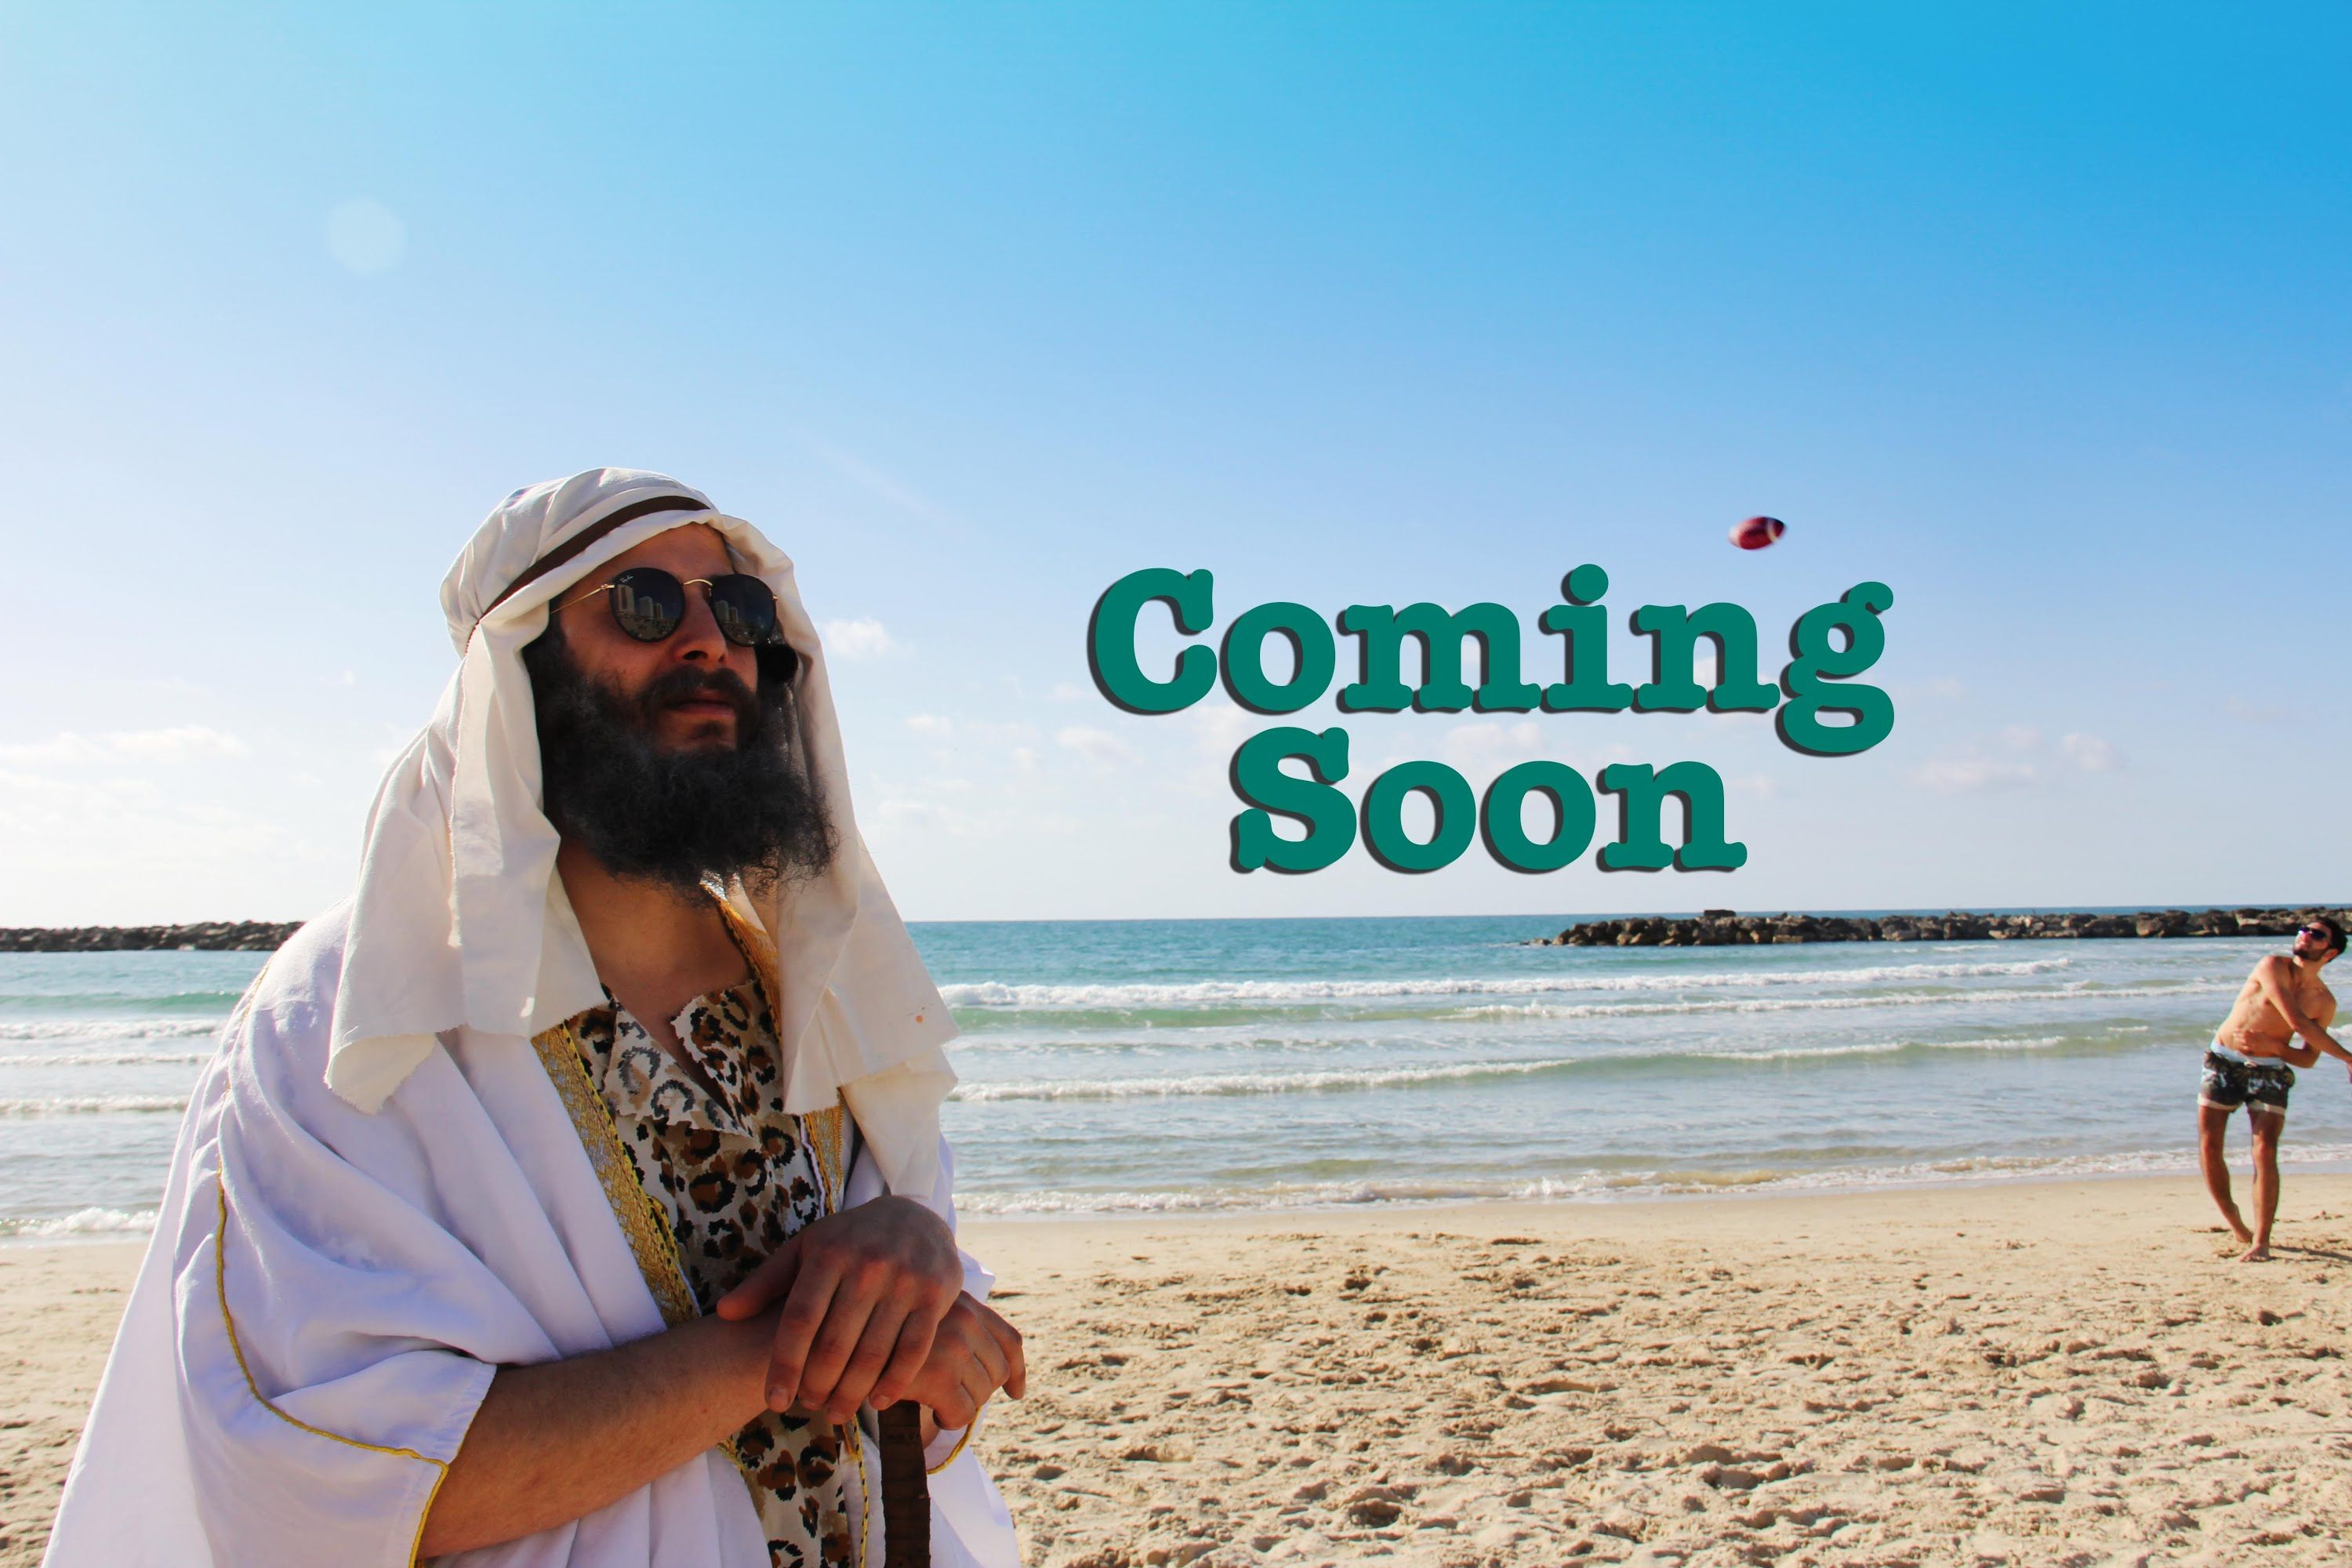 Abraham is coming to Tel Aviv